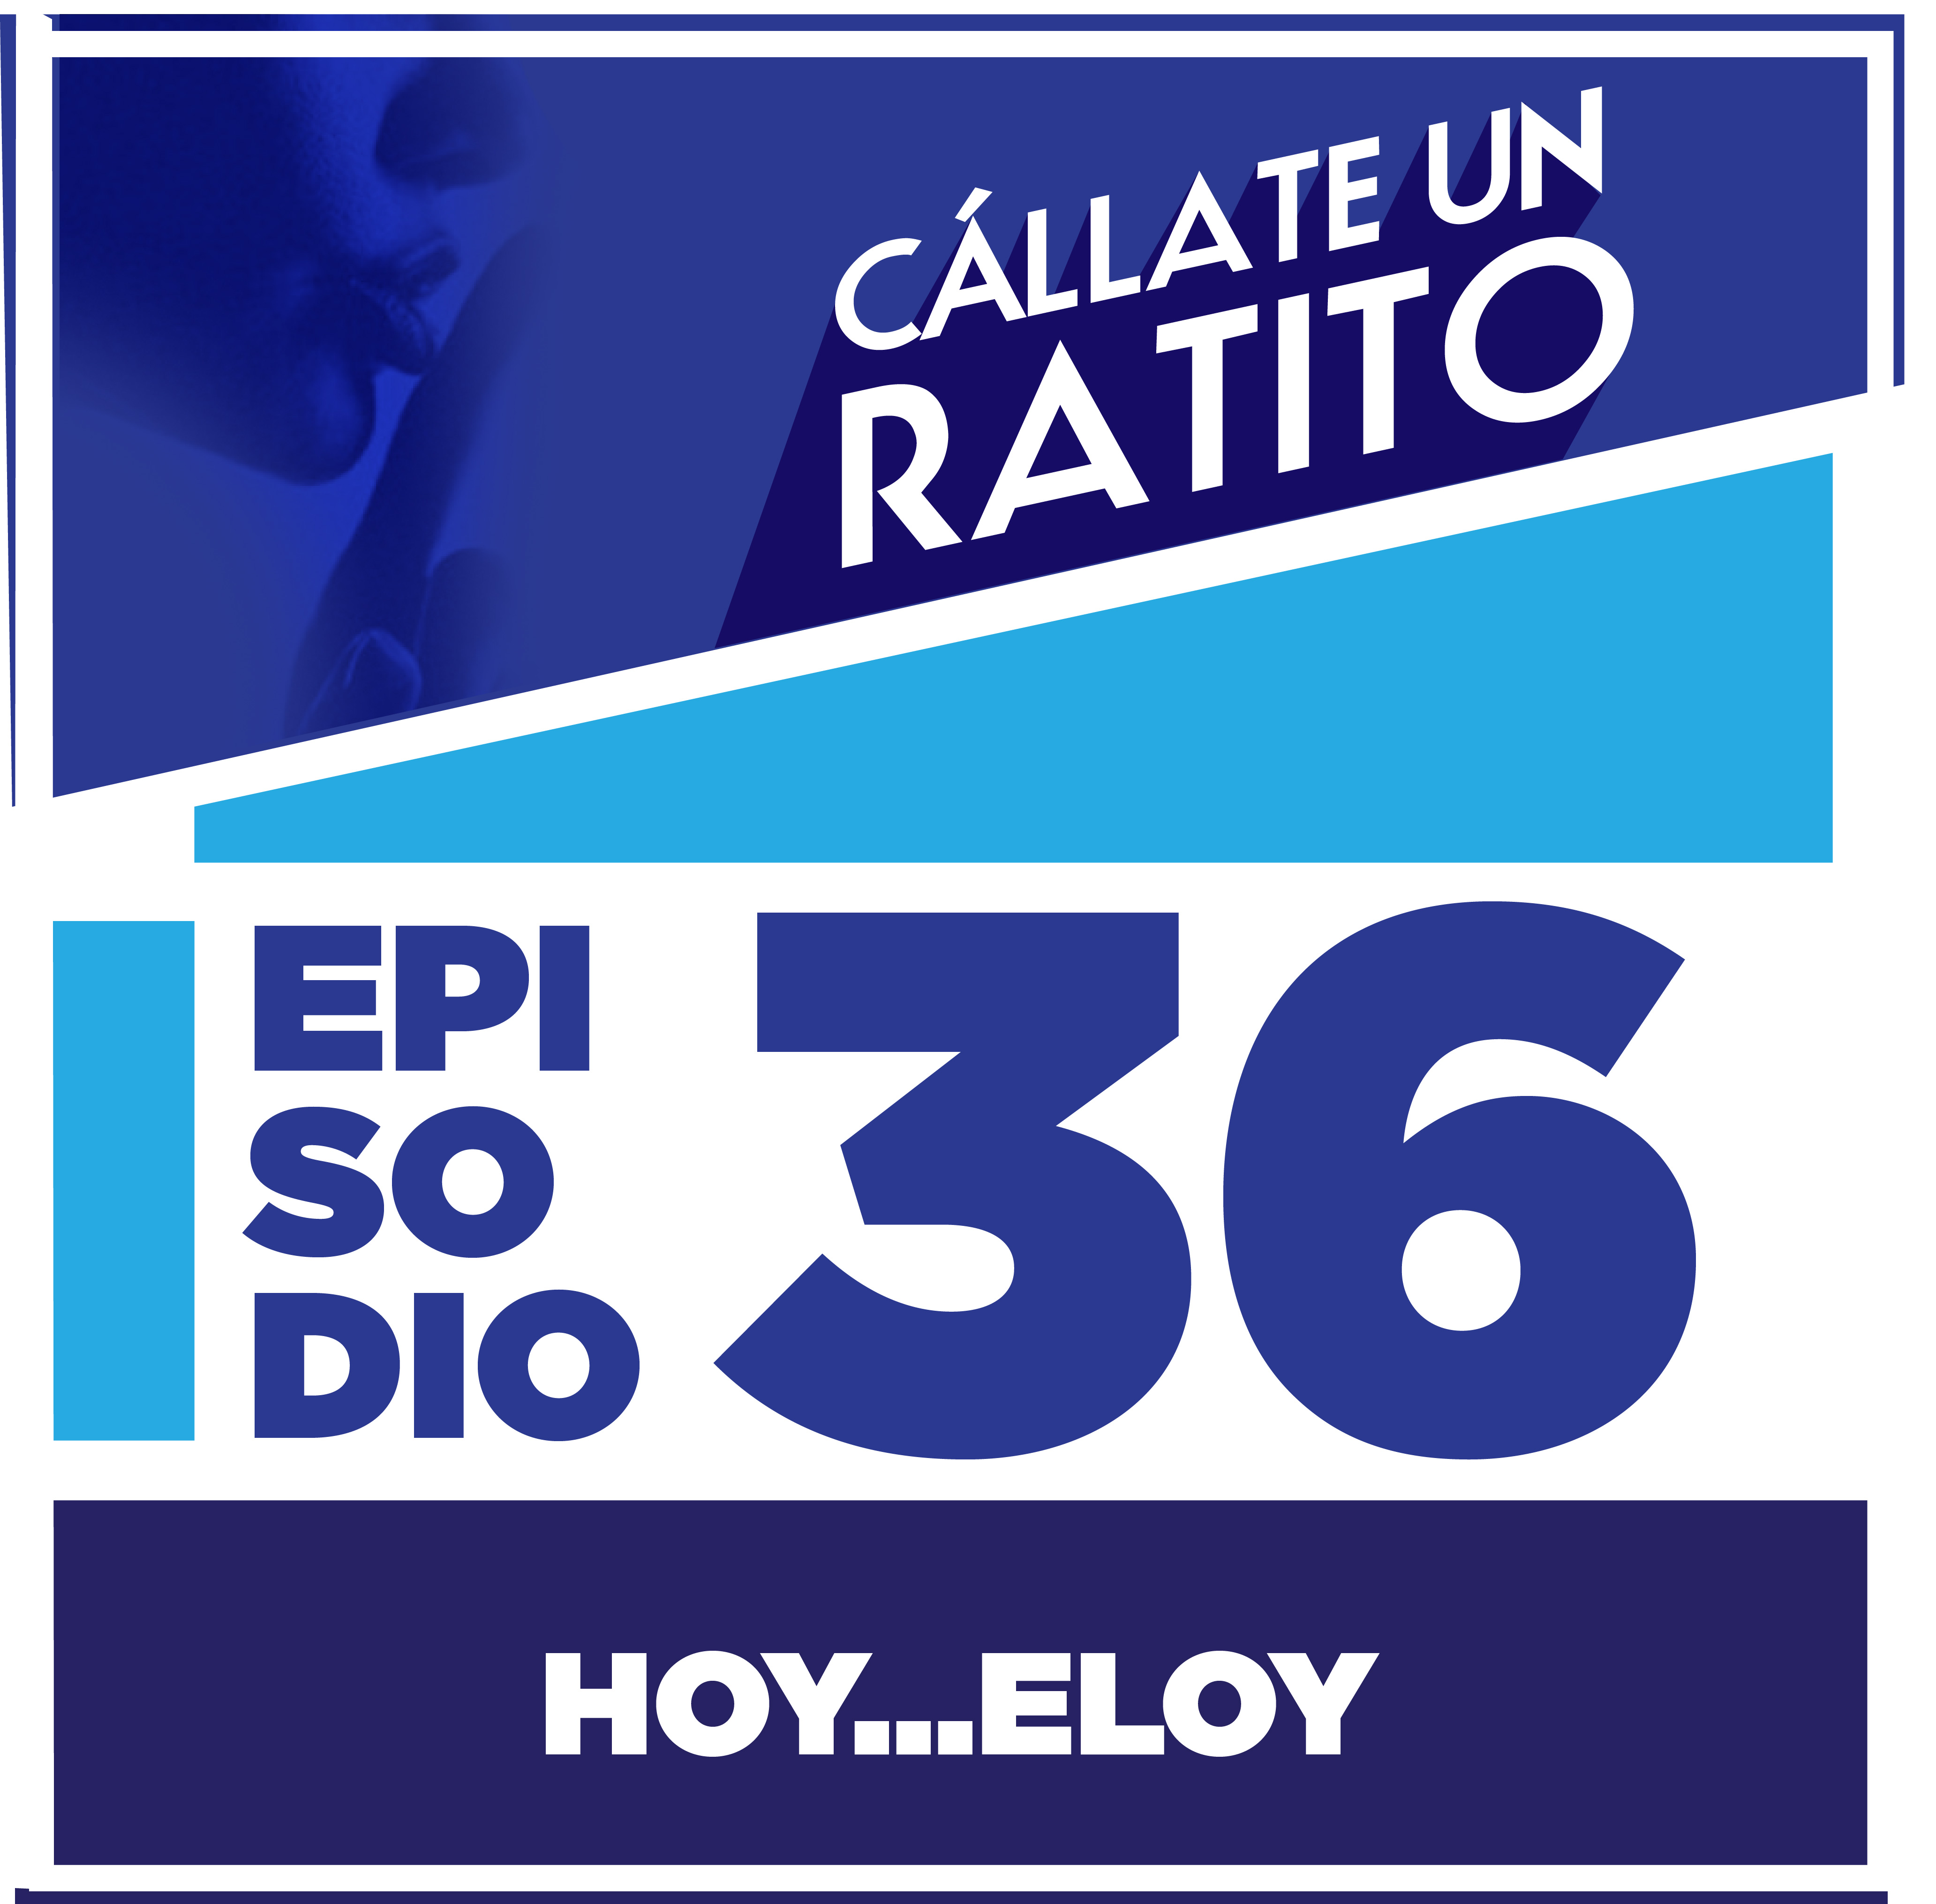 Cállate un ratito Episodio 36